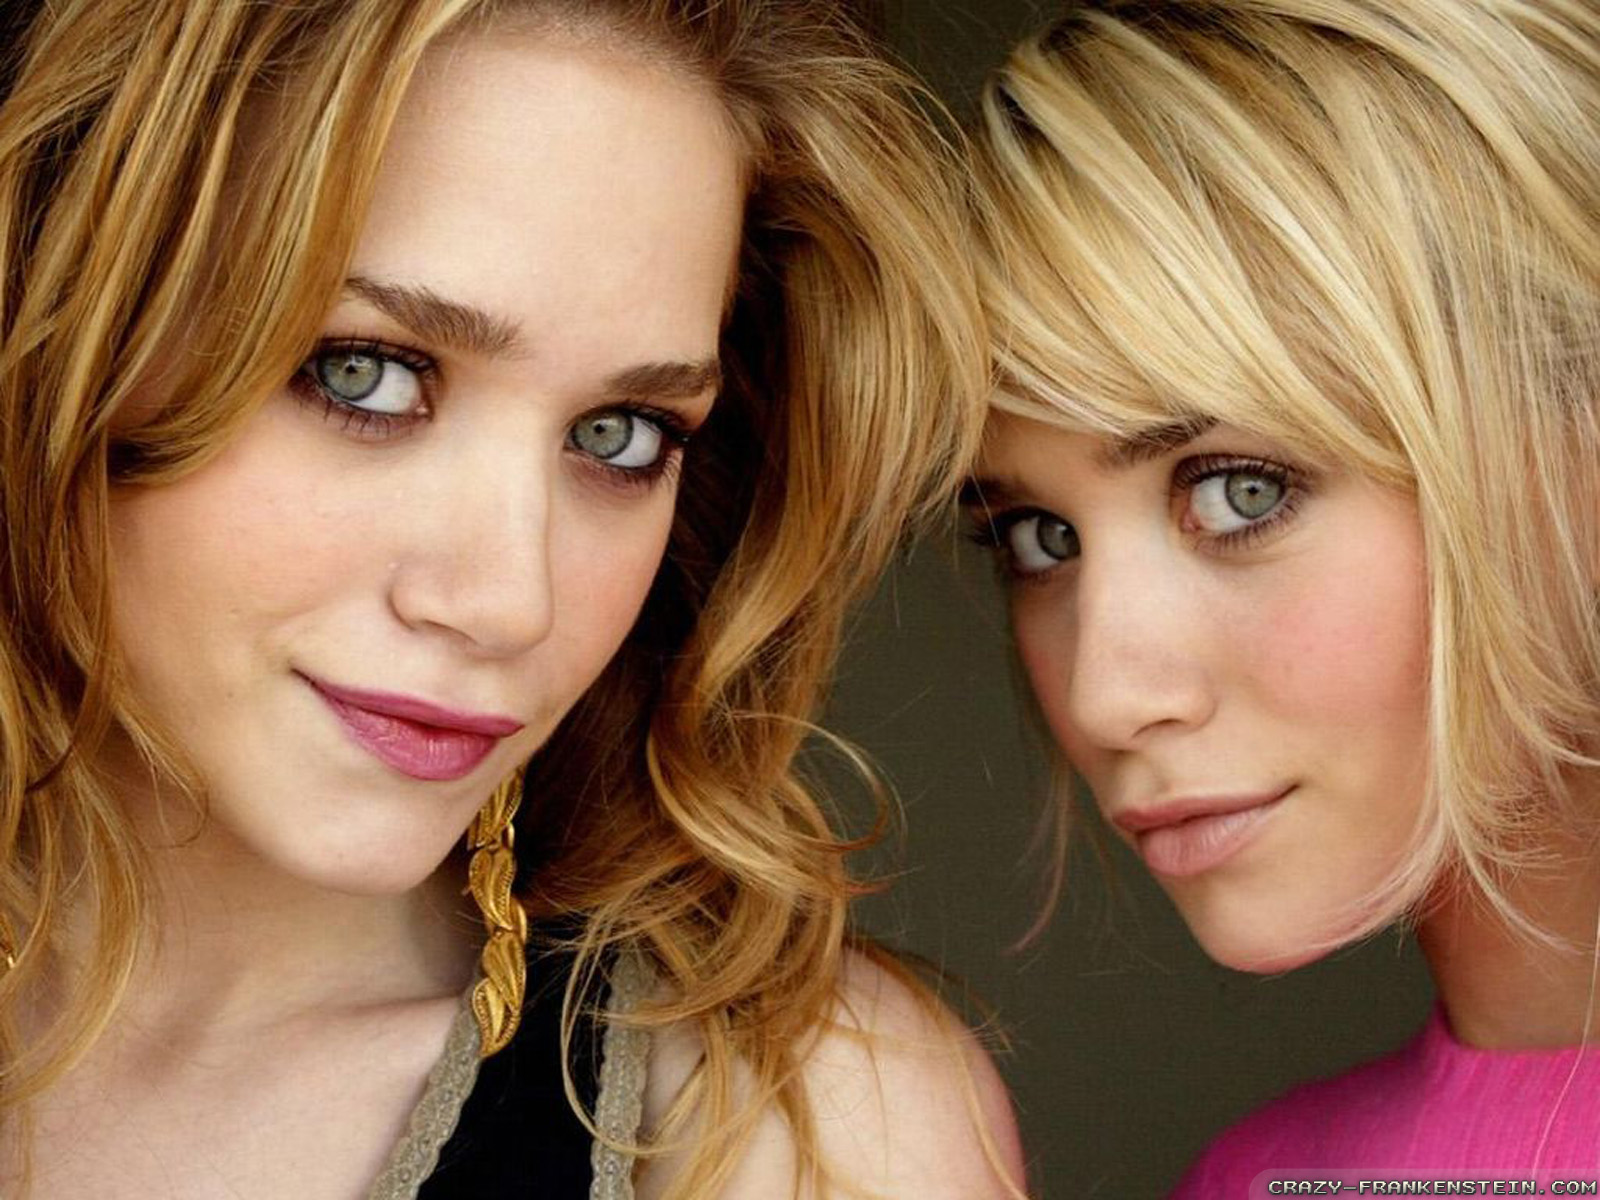 Olsen Twins picture